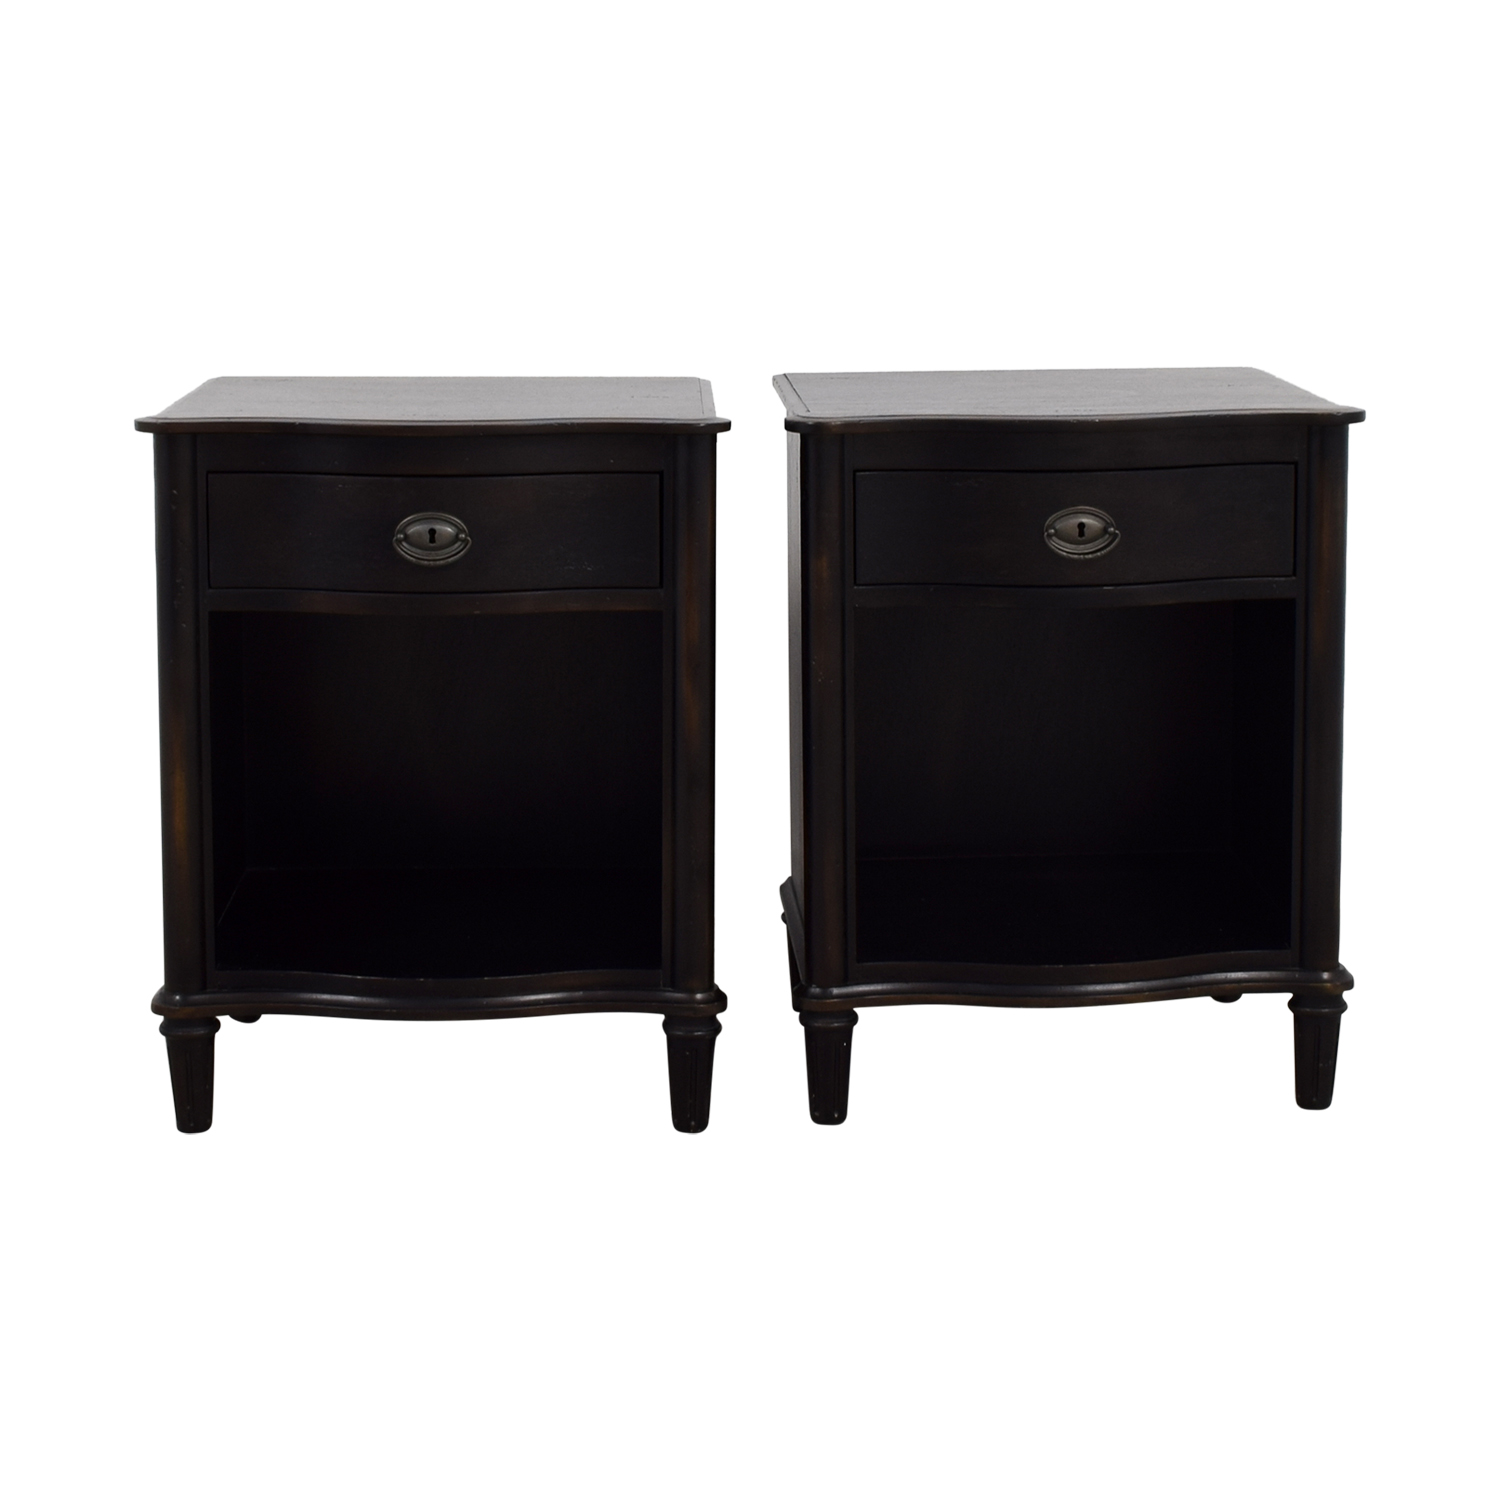 Restoration Hardware Empire Rosette Nightstands / End Tables